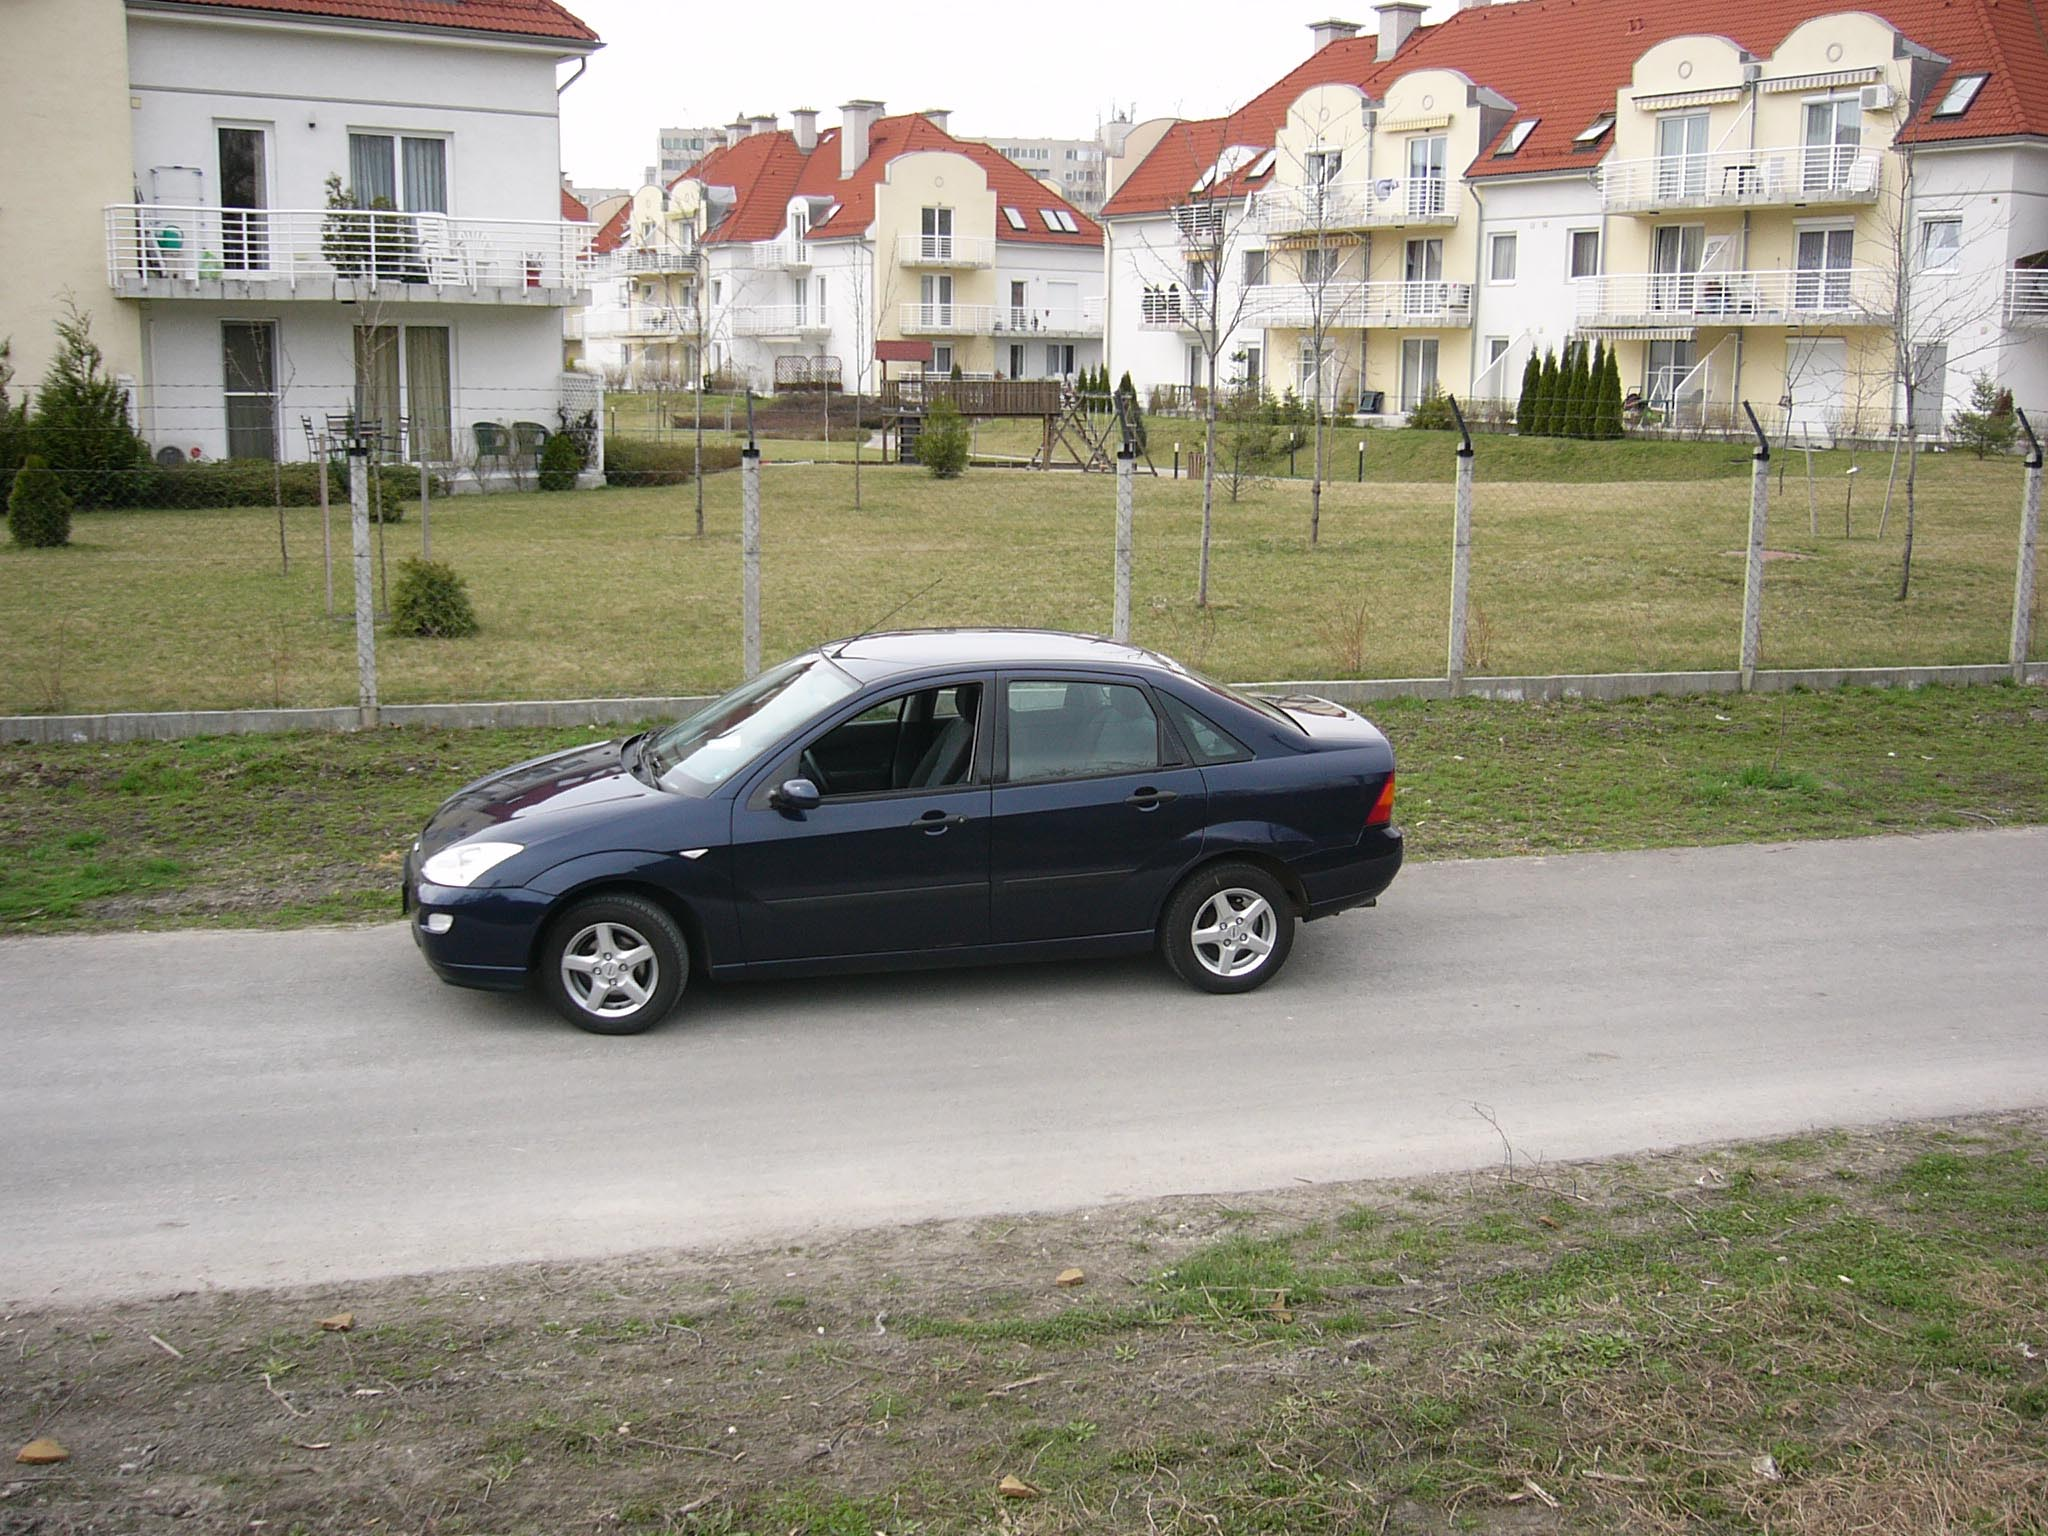 2001 Ford Fiesta In Snow Upcomingcarshq Com